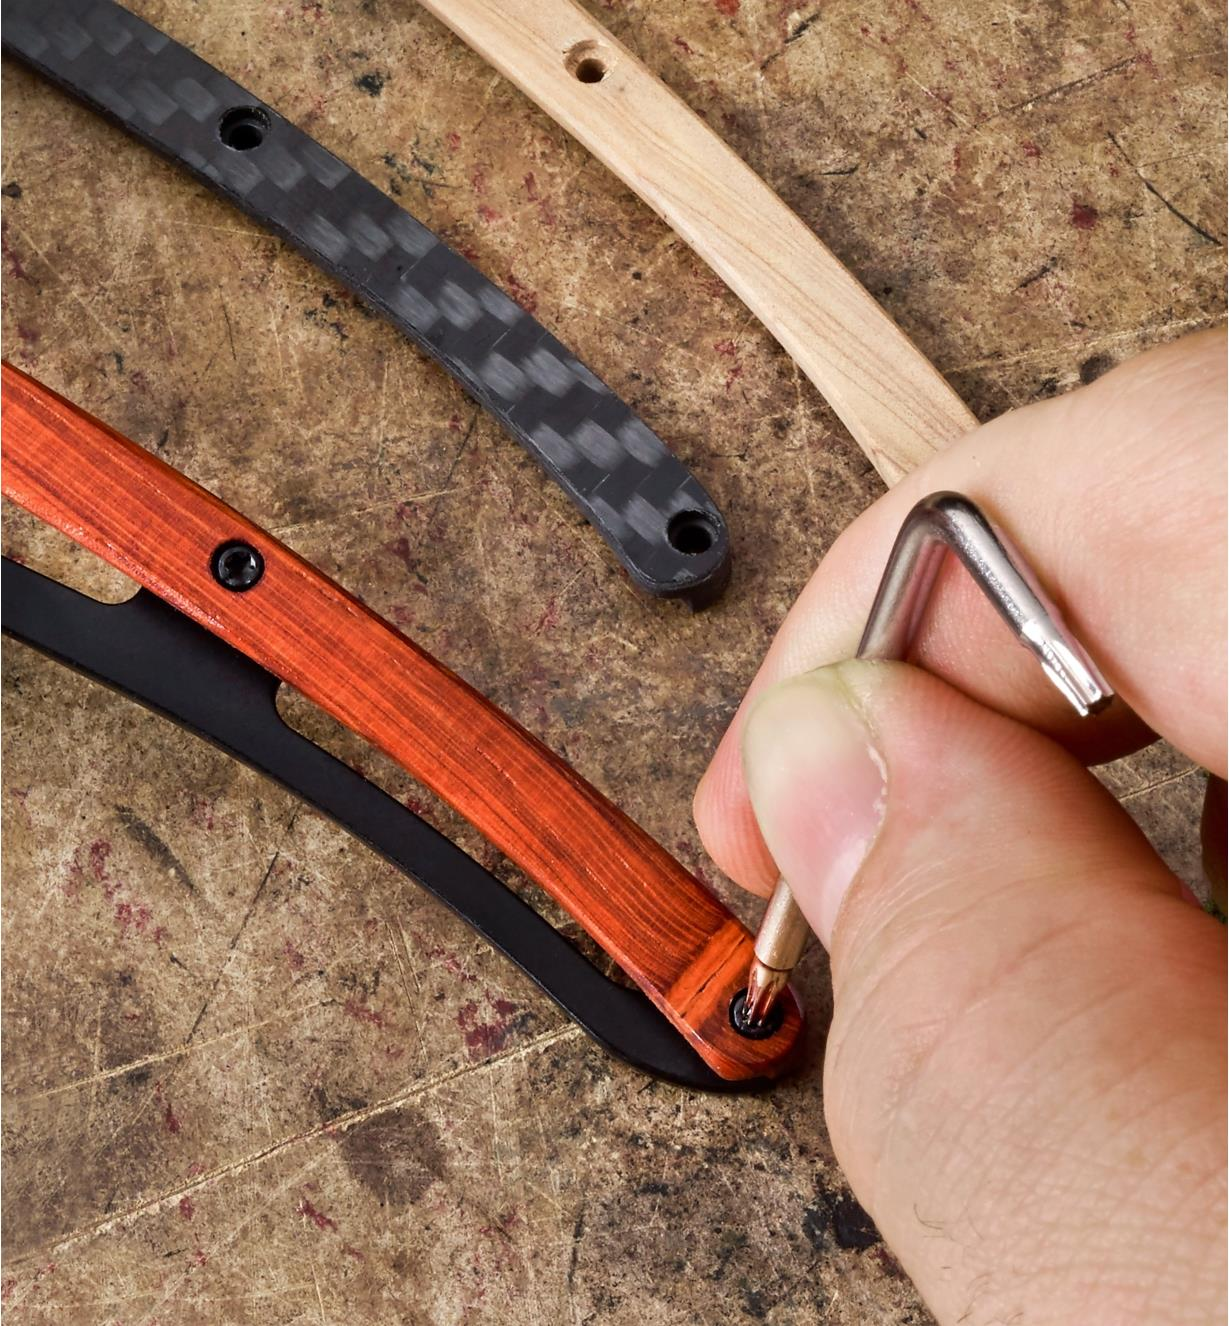 The personalized knife kit being assembled using the included padauk handle scale